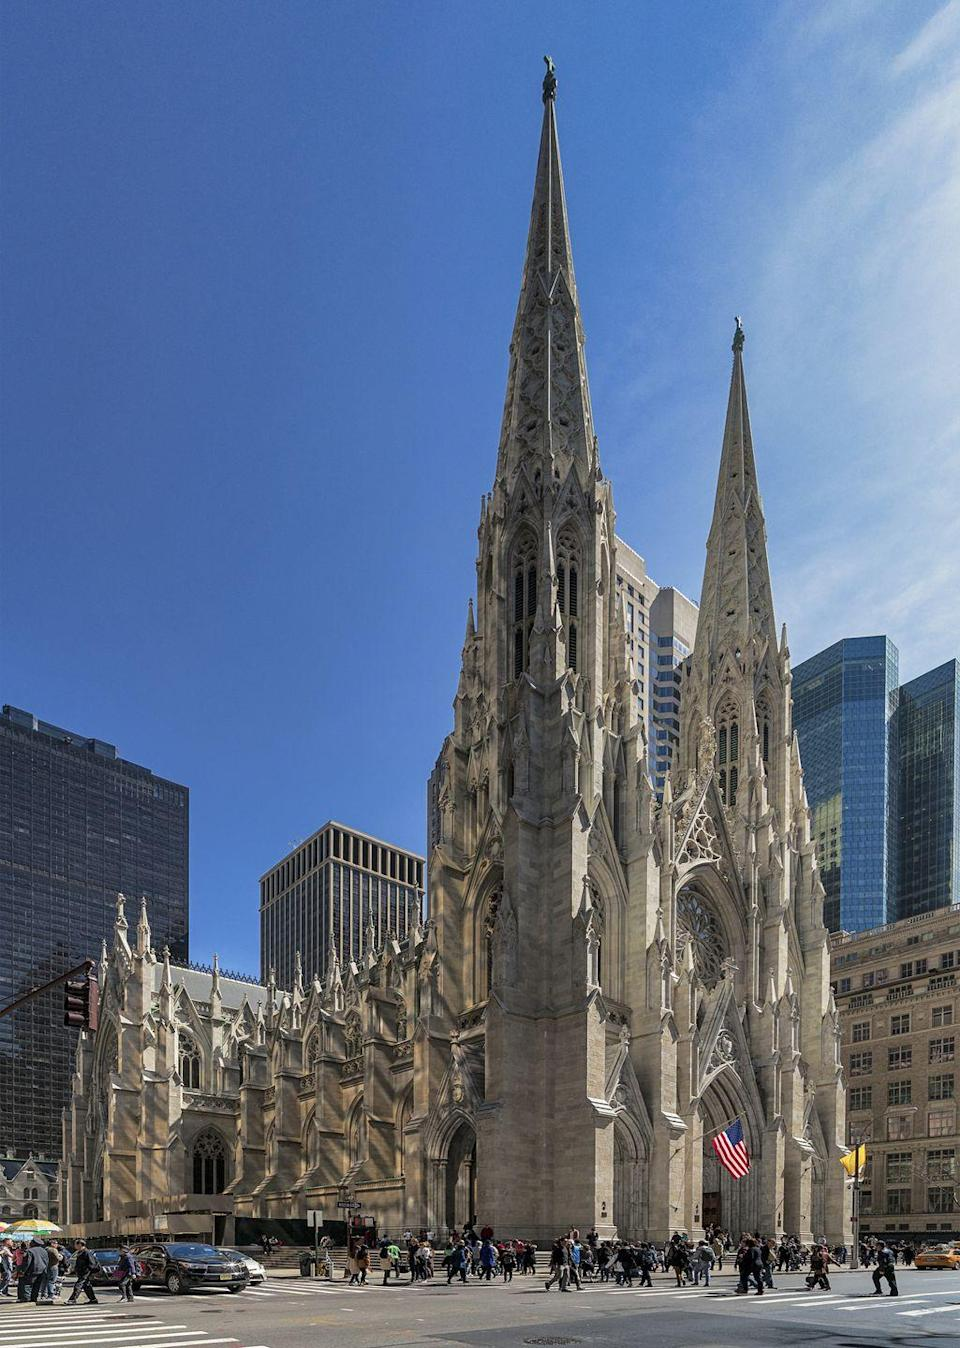 """<p>This iconic New York landmark receives approximately five million visitors a year. The cathedral was built in the latter half of the 19th century to symbolize the rise of religious freedom and tolerance in America.</p><p>Though criticized for building St. Patrick's Cathedral too far outside the city during this time (though it is now on some pretty prime real estate), Archbishop John Hughes believed in his vision of building the most beautiful Gothic cathedral in the New World, which would one day be """"the heart of the city."""" Construction continued throughout the Civil War and was completed in 1878, fulfilling Hughes' dream. </p>"""